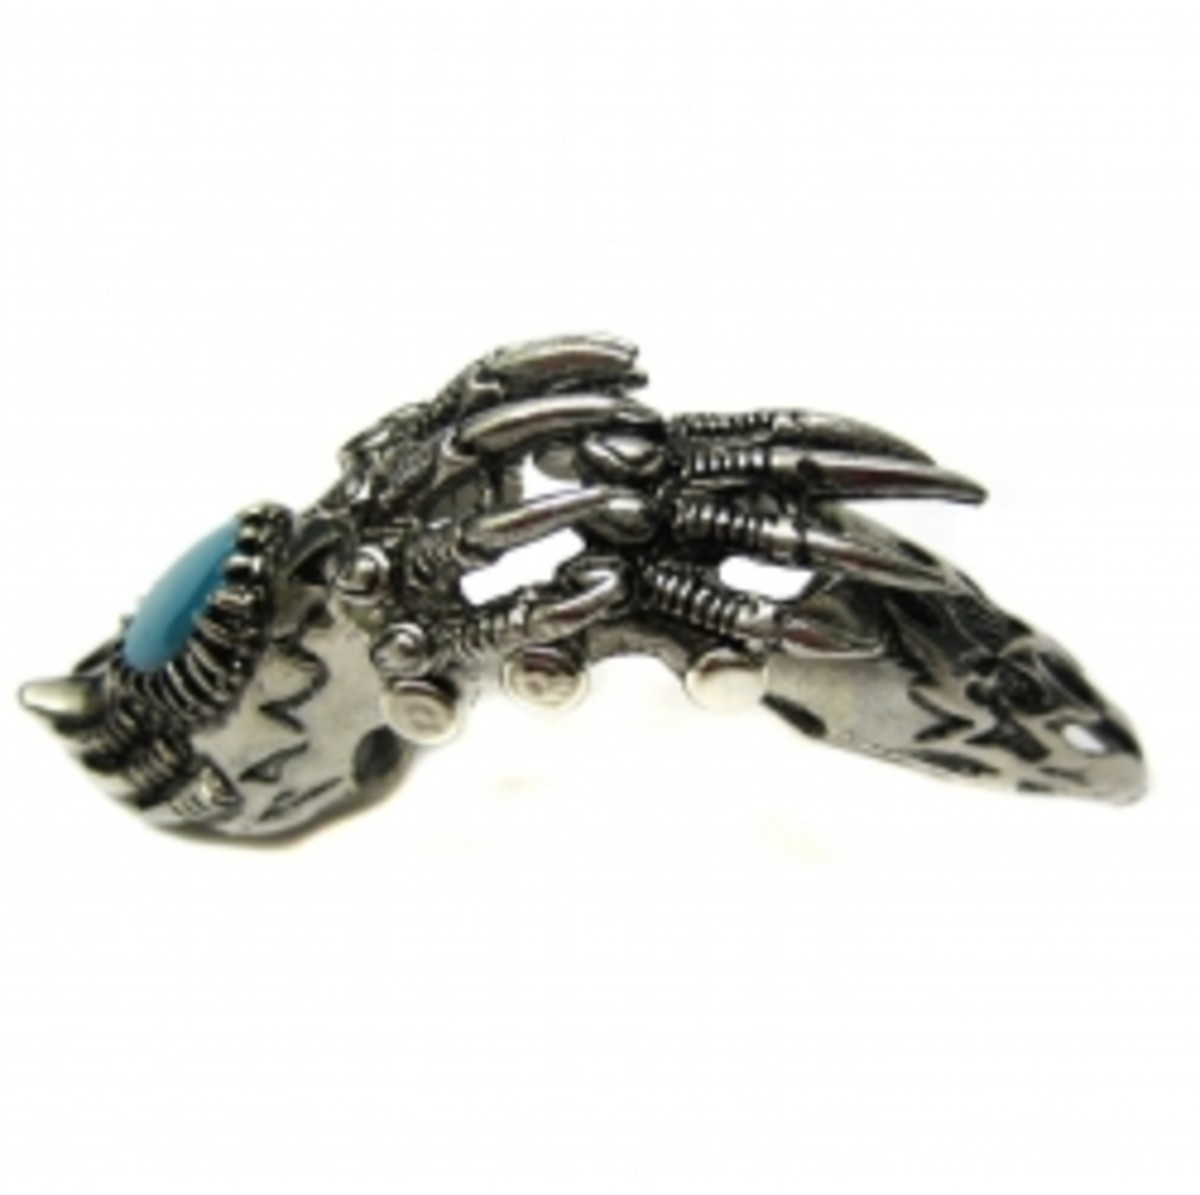 Claw-and-Gemstone-Armor-Ring